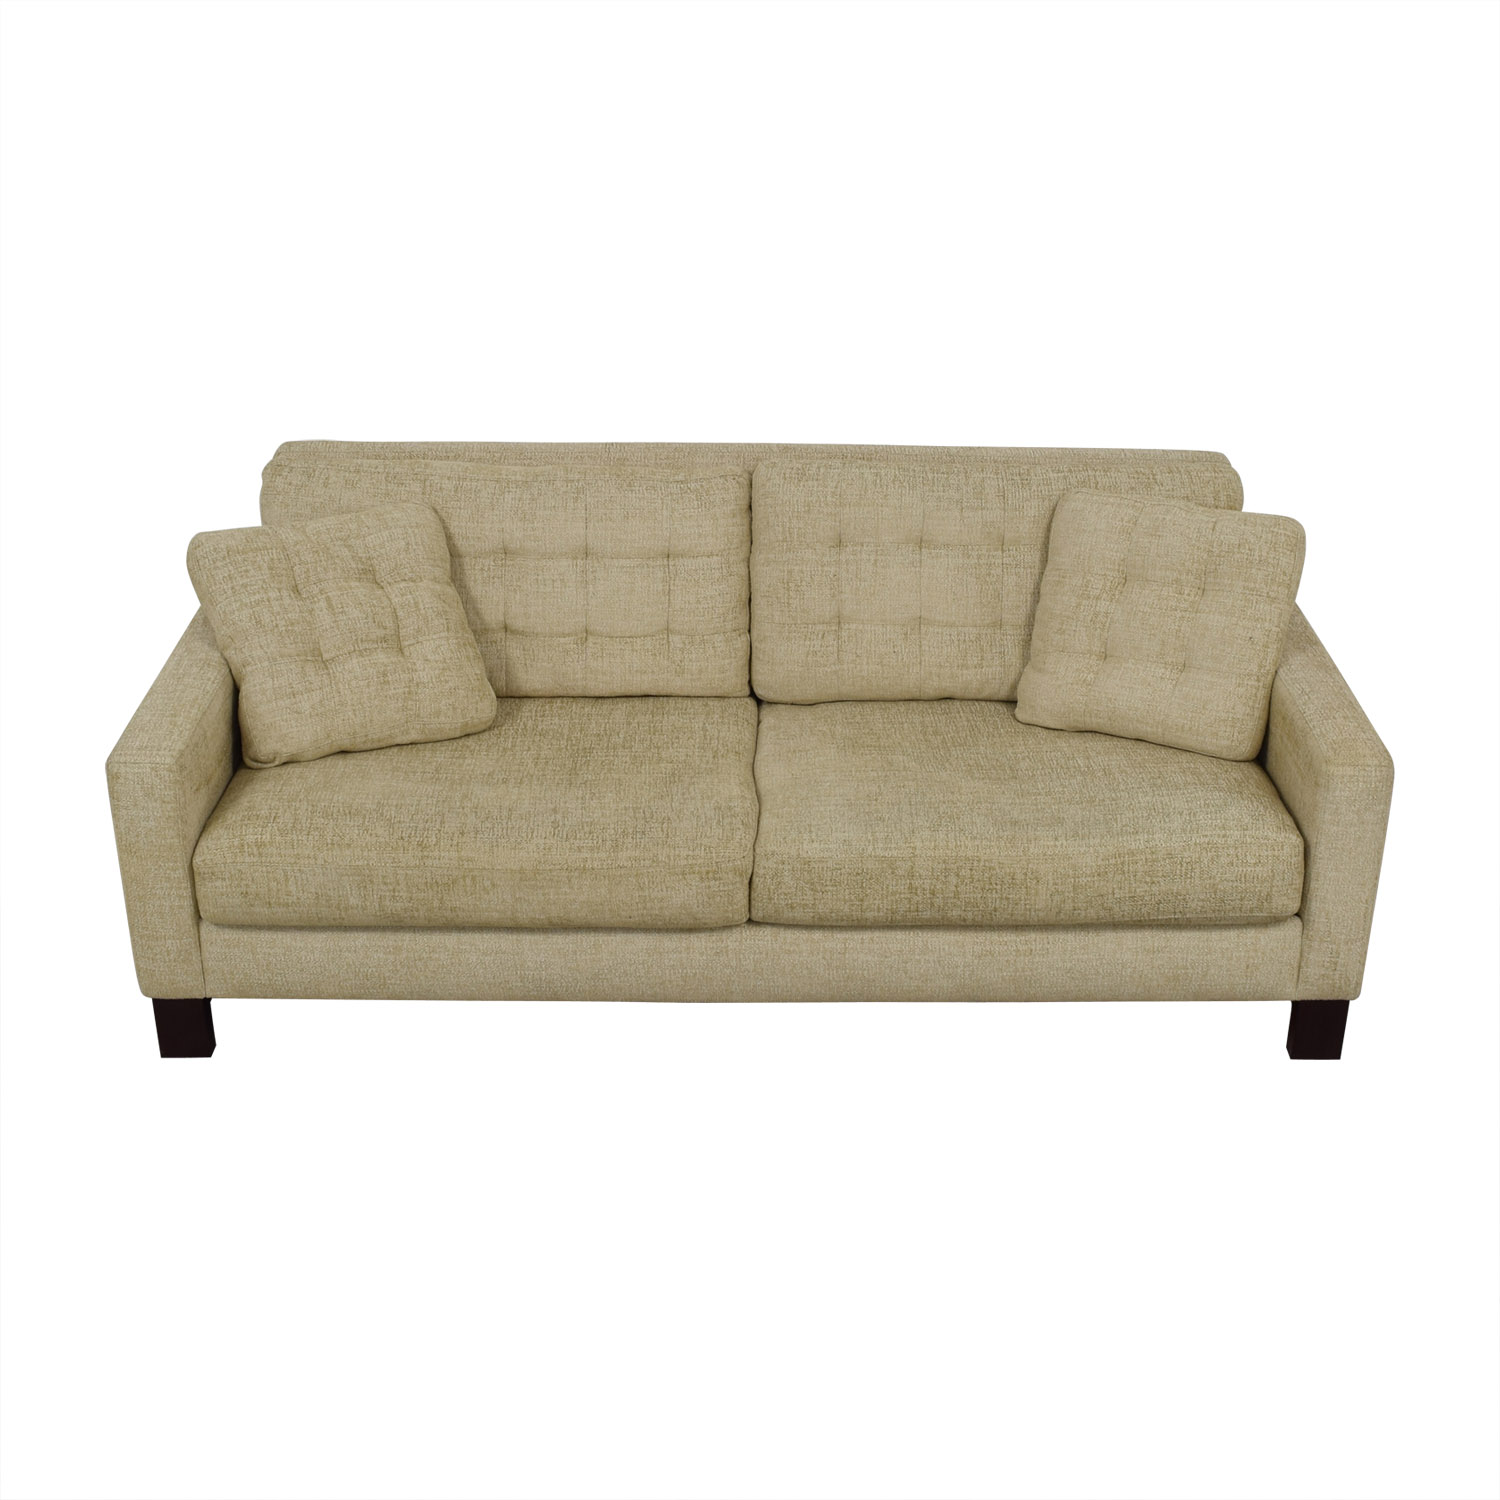 shop American Leather American Leather Beige Tweed Two-Cushion Sofa online